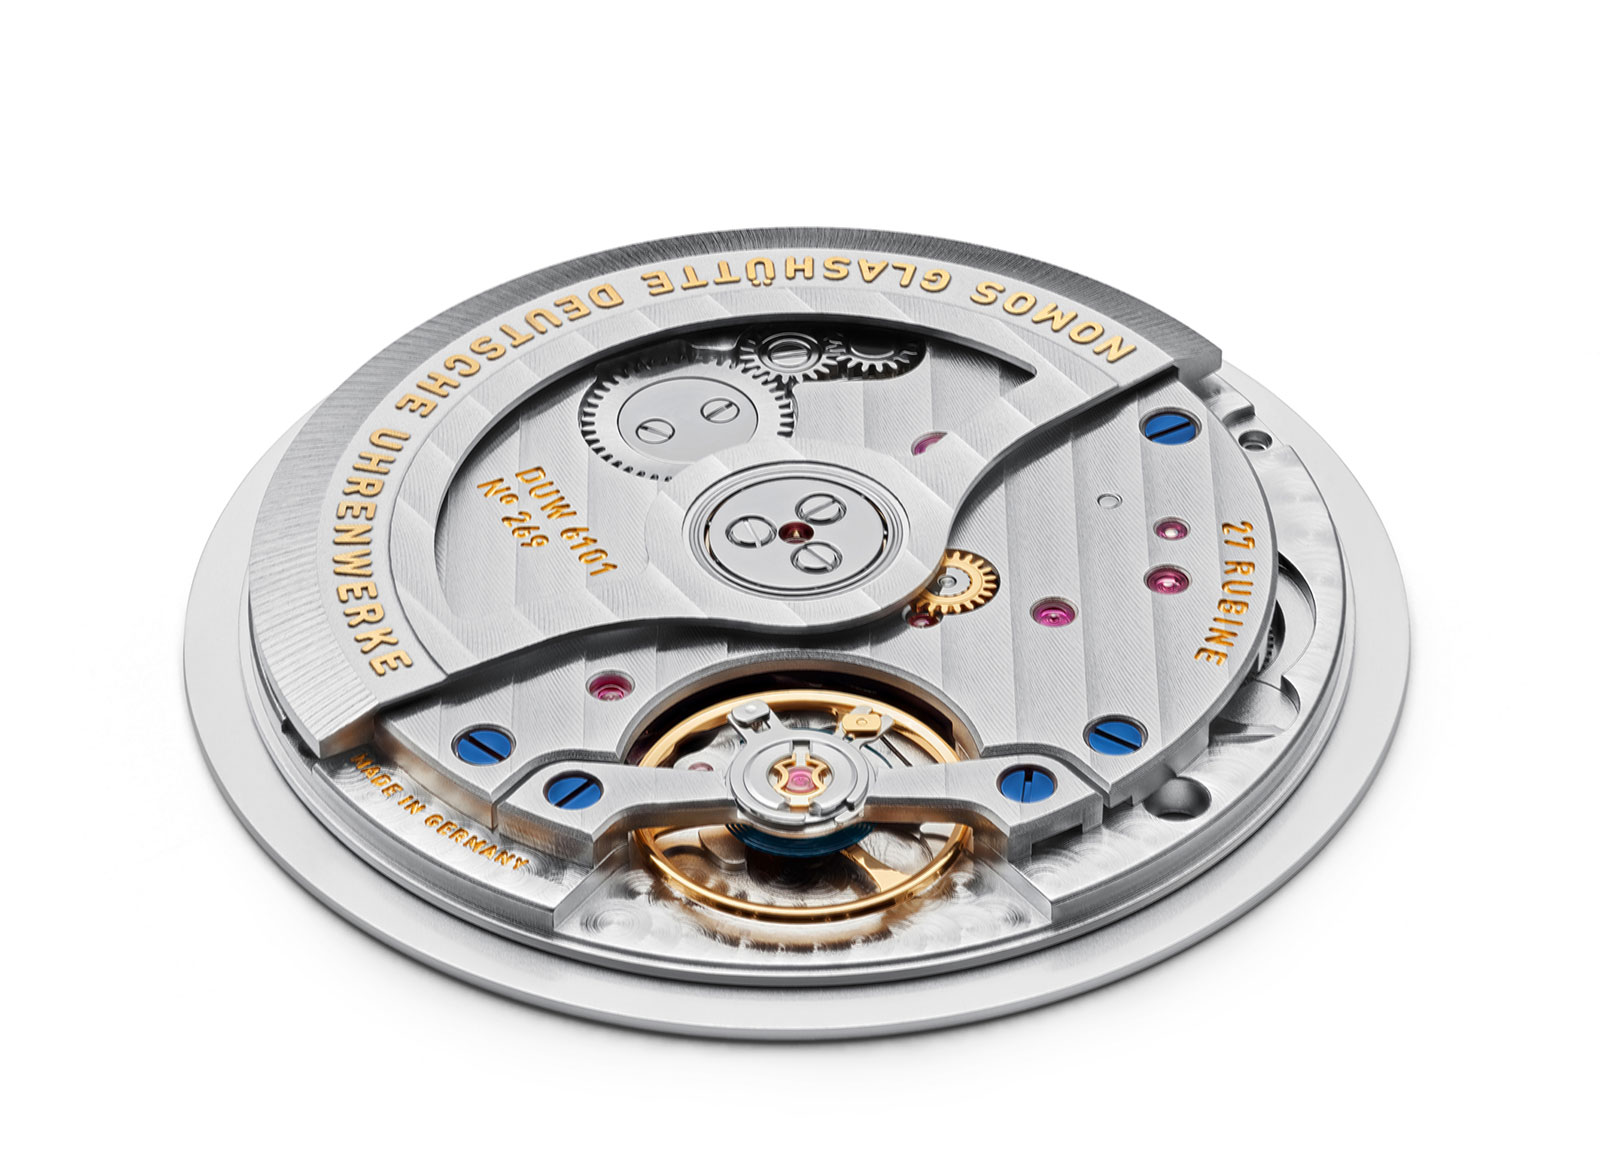 NOMOS_DUW_6101_movement